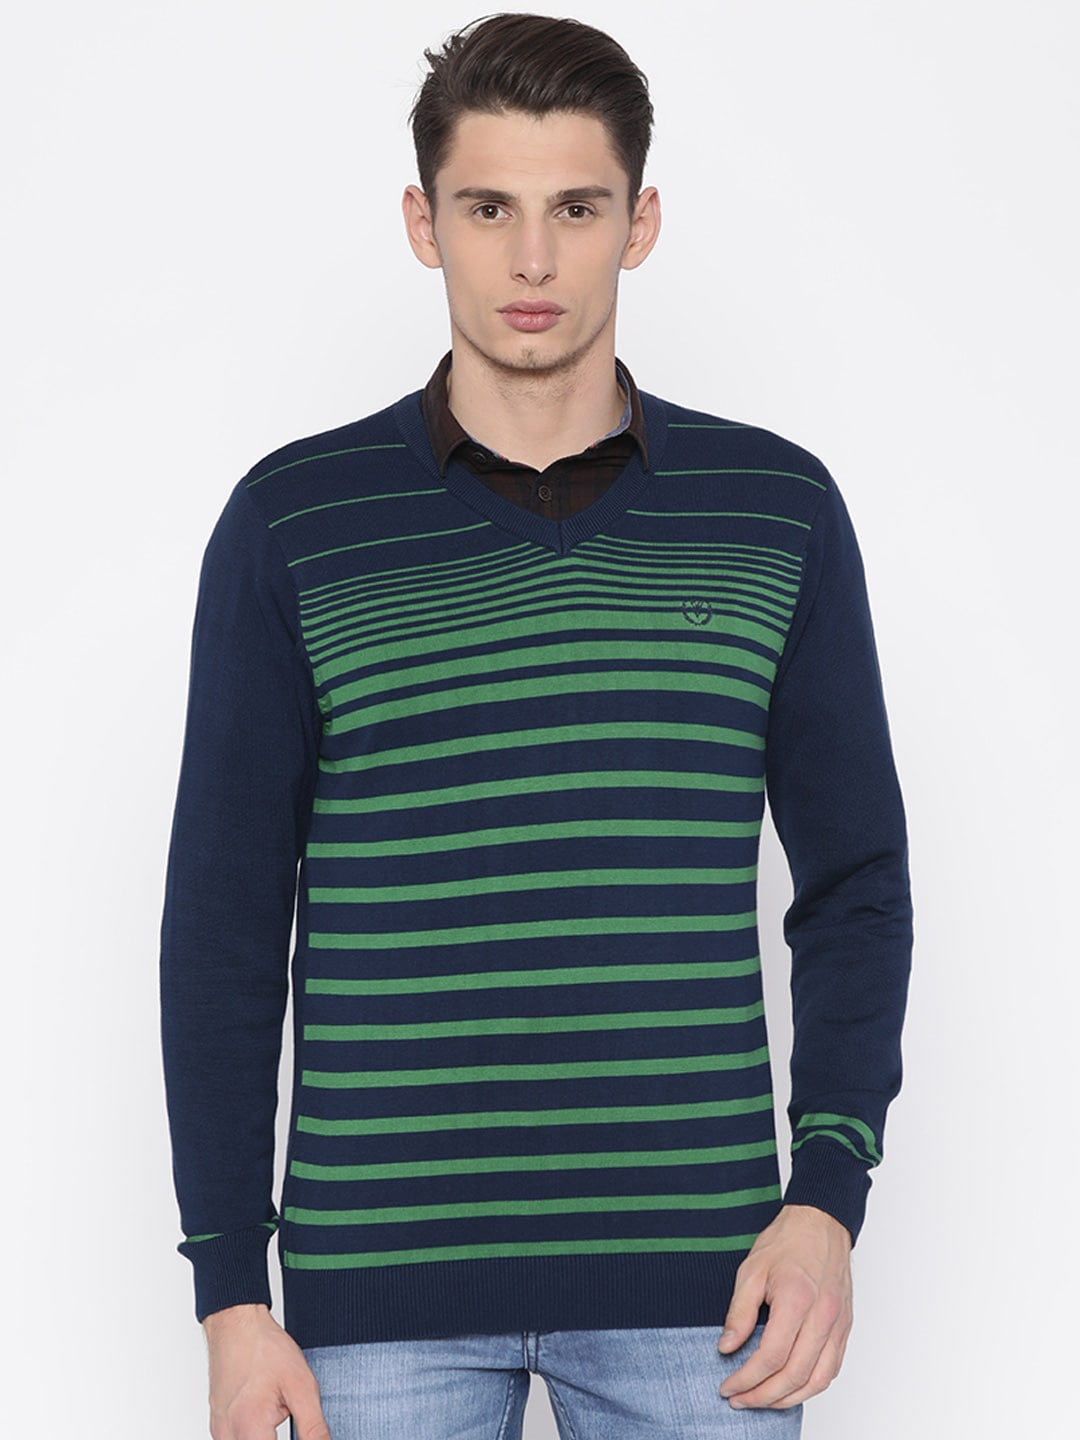 Van Heusen Sweaters - Buy Van Heusen Sweaters Online in India